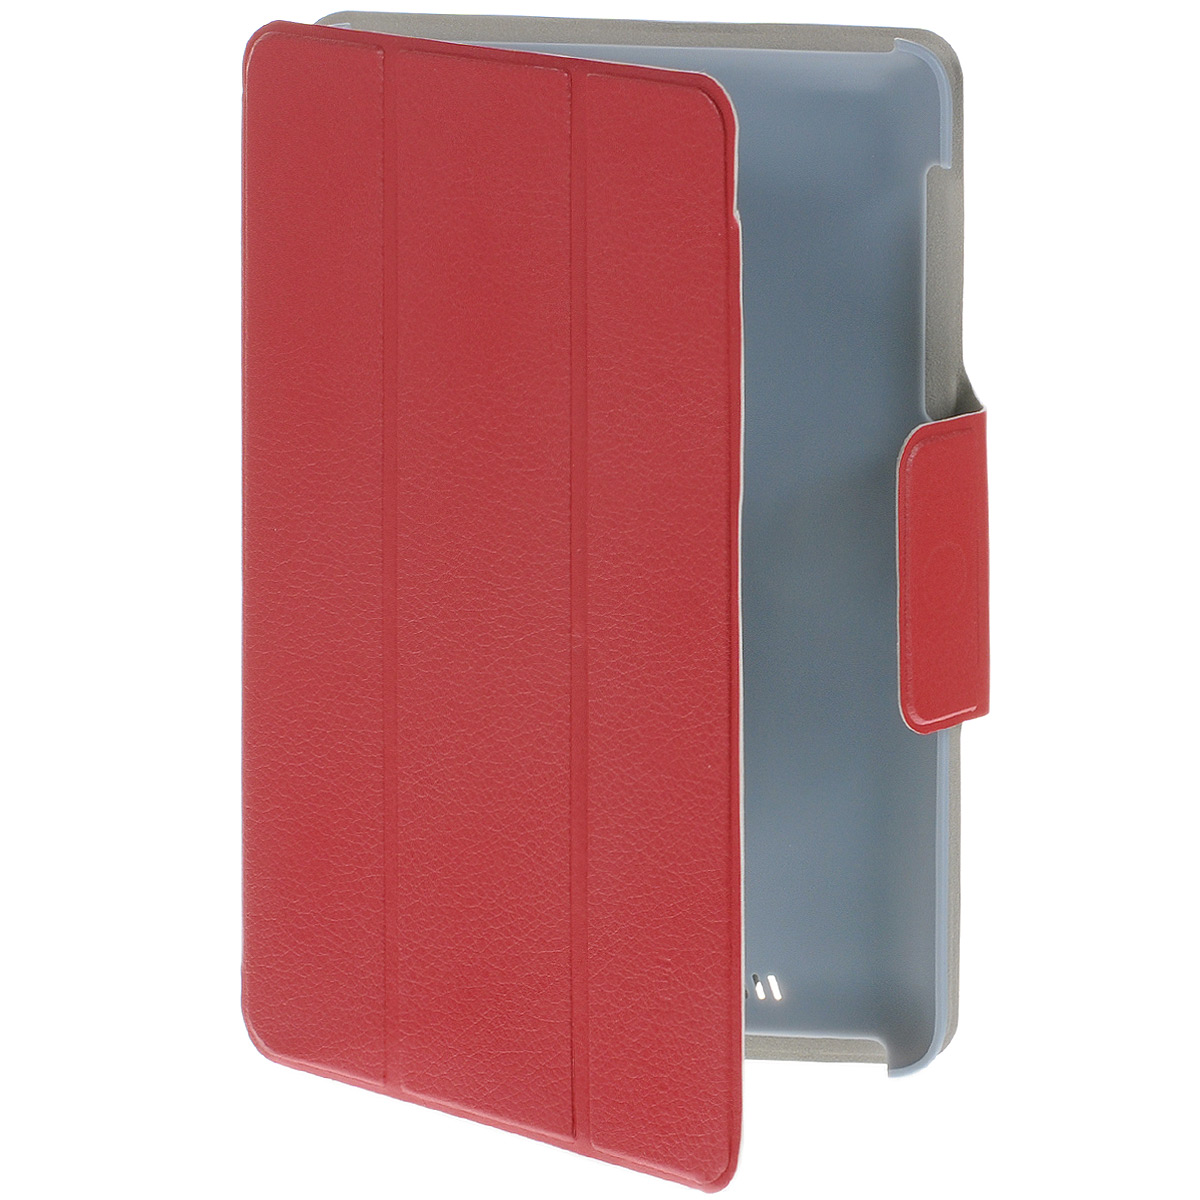 IT Baggage Hard case чехол для Asus Nexus 7, Red